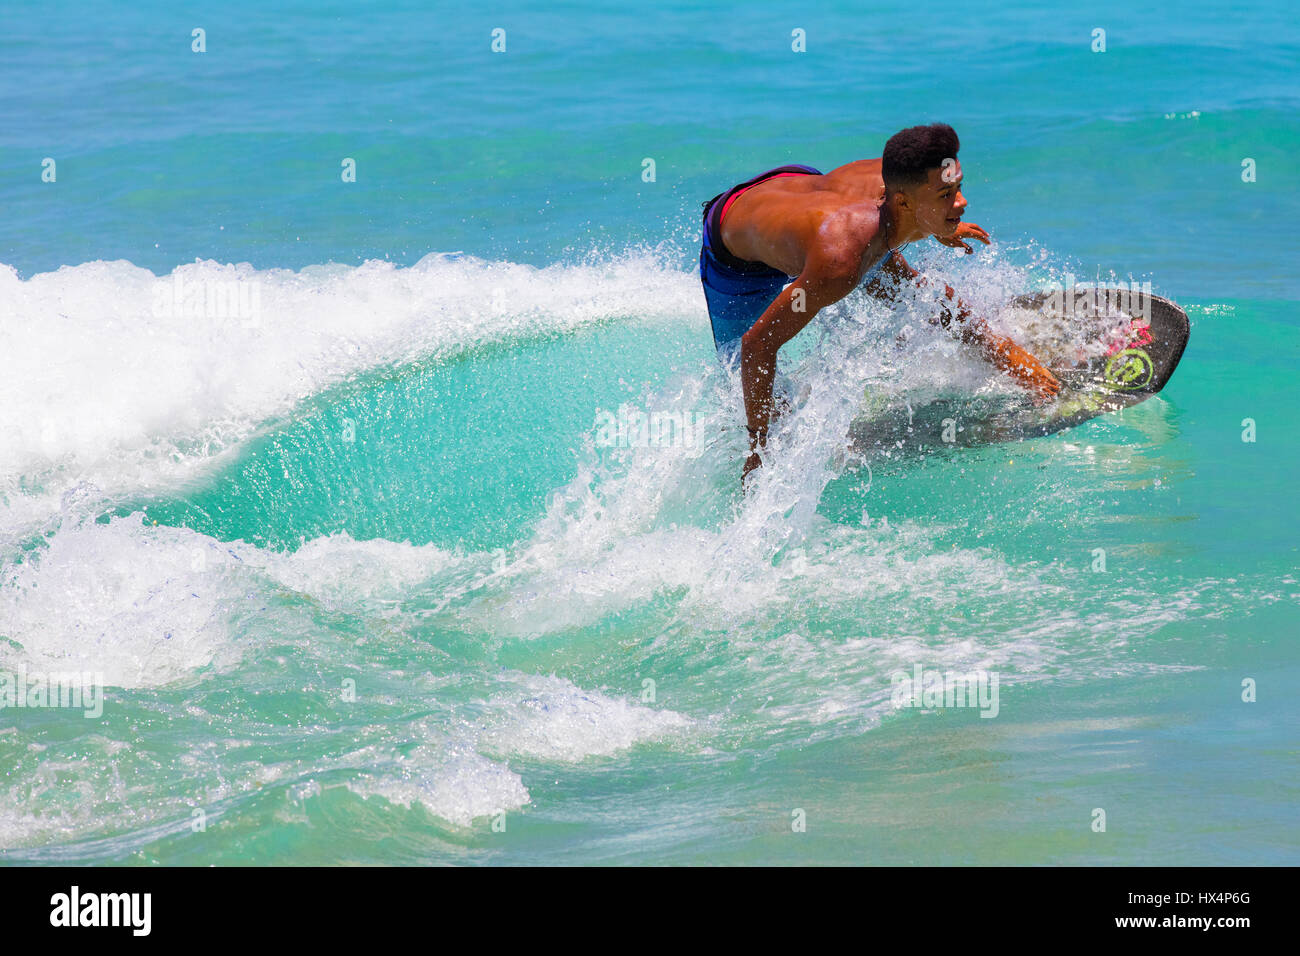 Young surfer near Lopes Mendes beach. ilha Grande, RJ, Brazil. - Stock Image